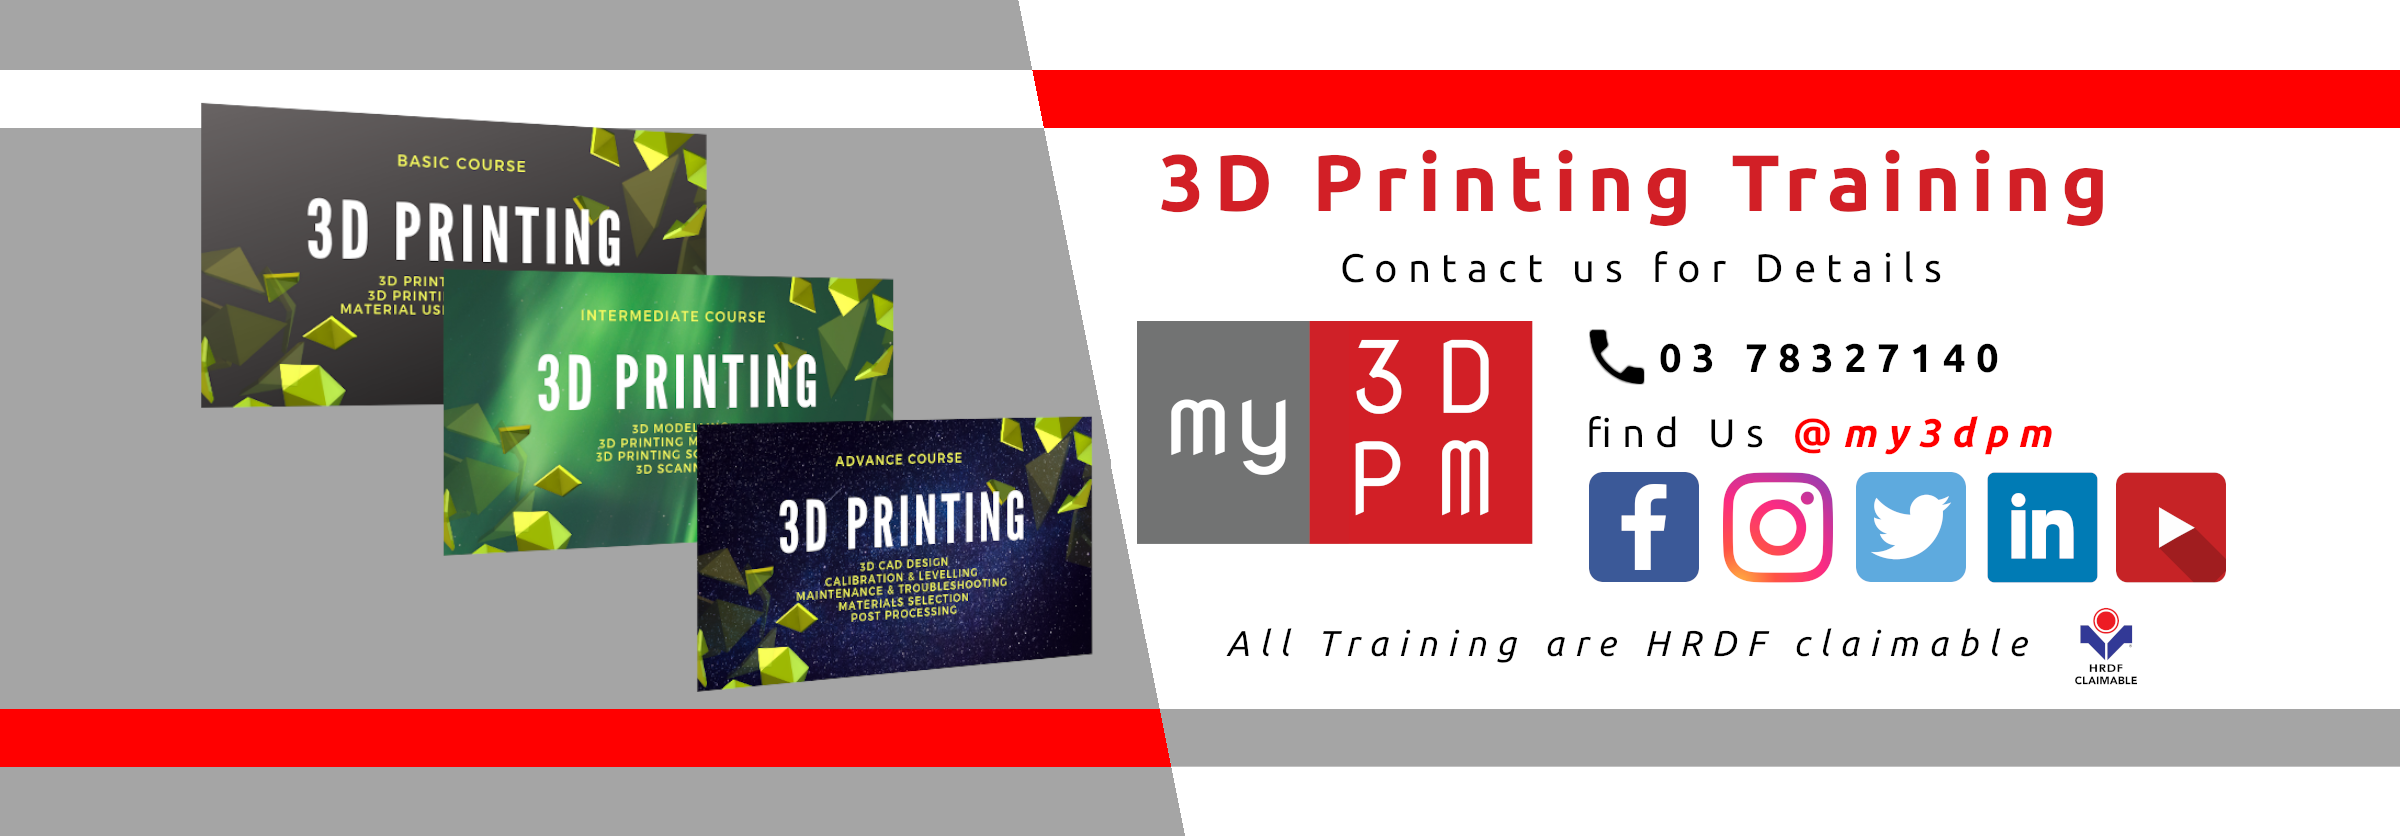 my3DPM offer training for 3D printing and 3D printers